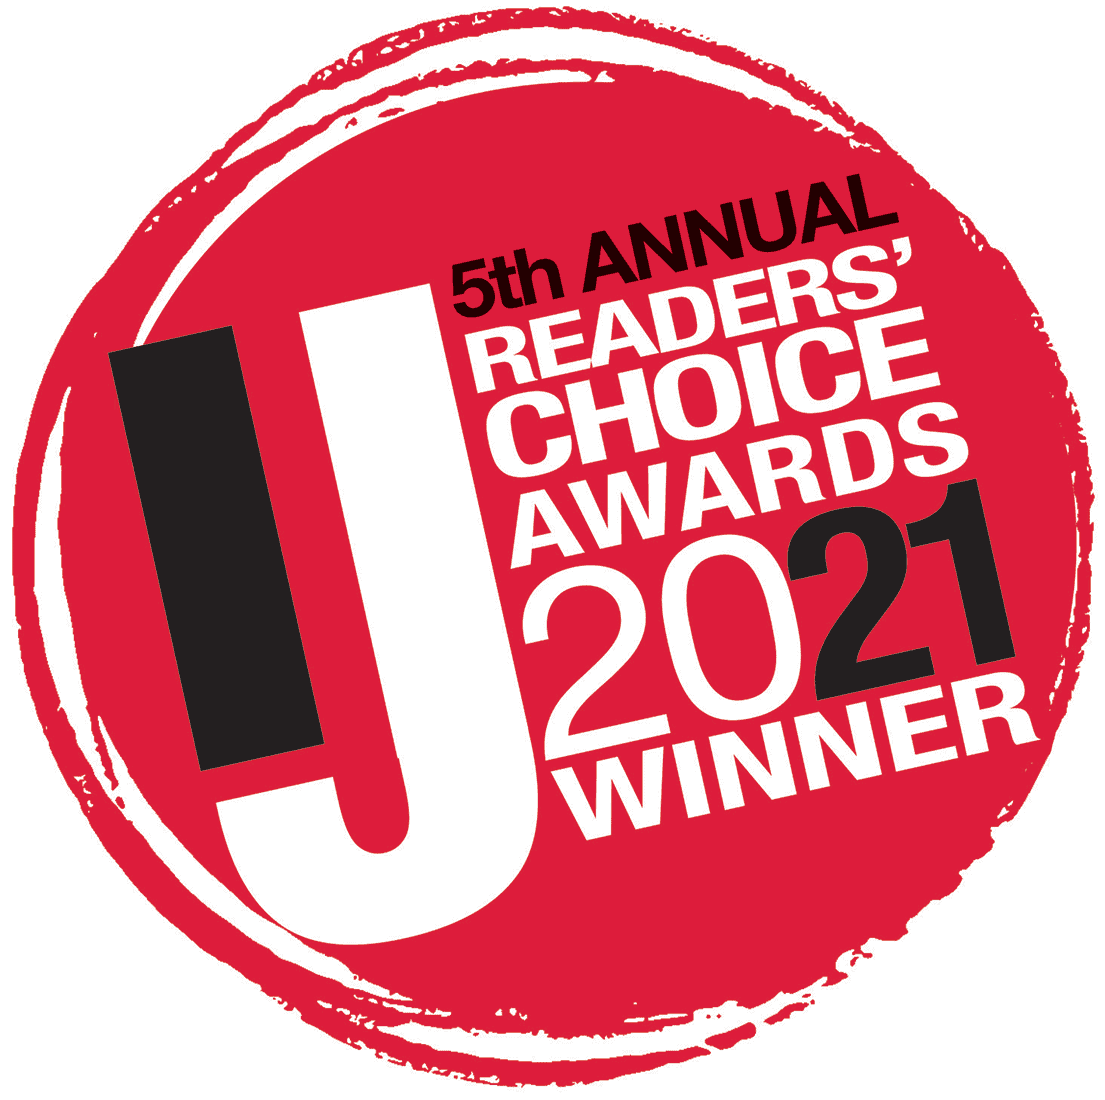 Voted Best Hearing Aid Center in Marin County for 2021!